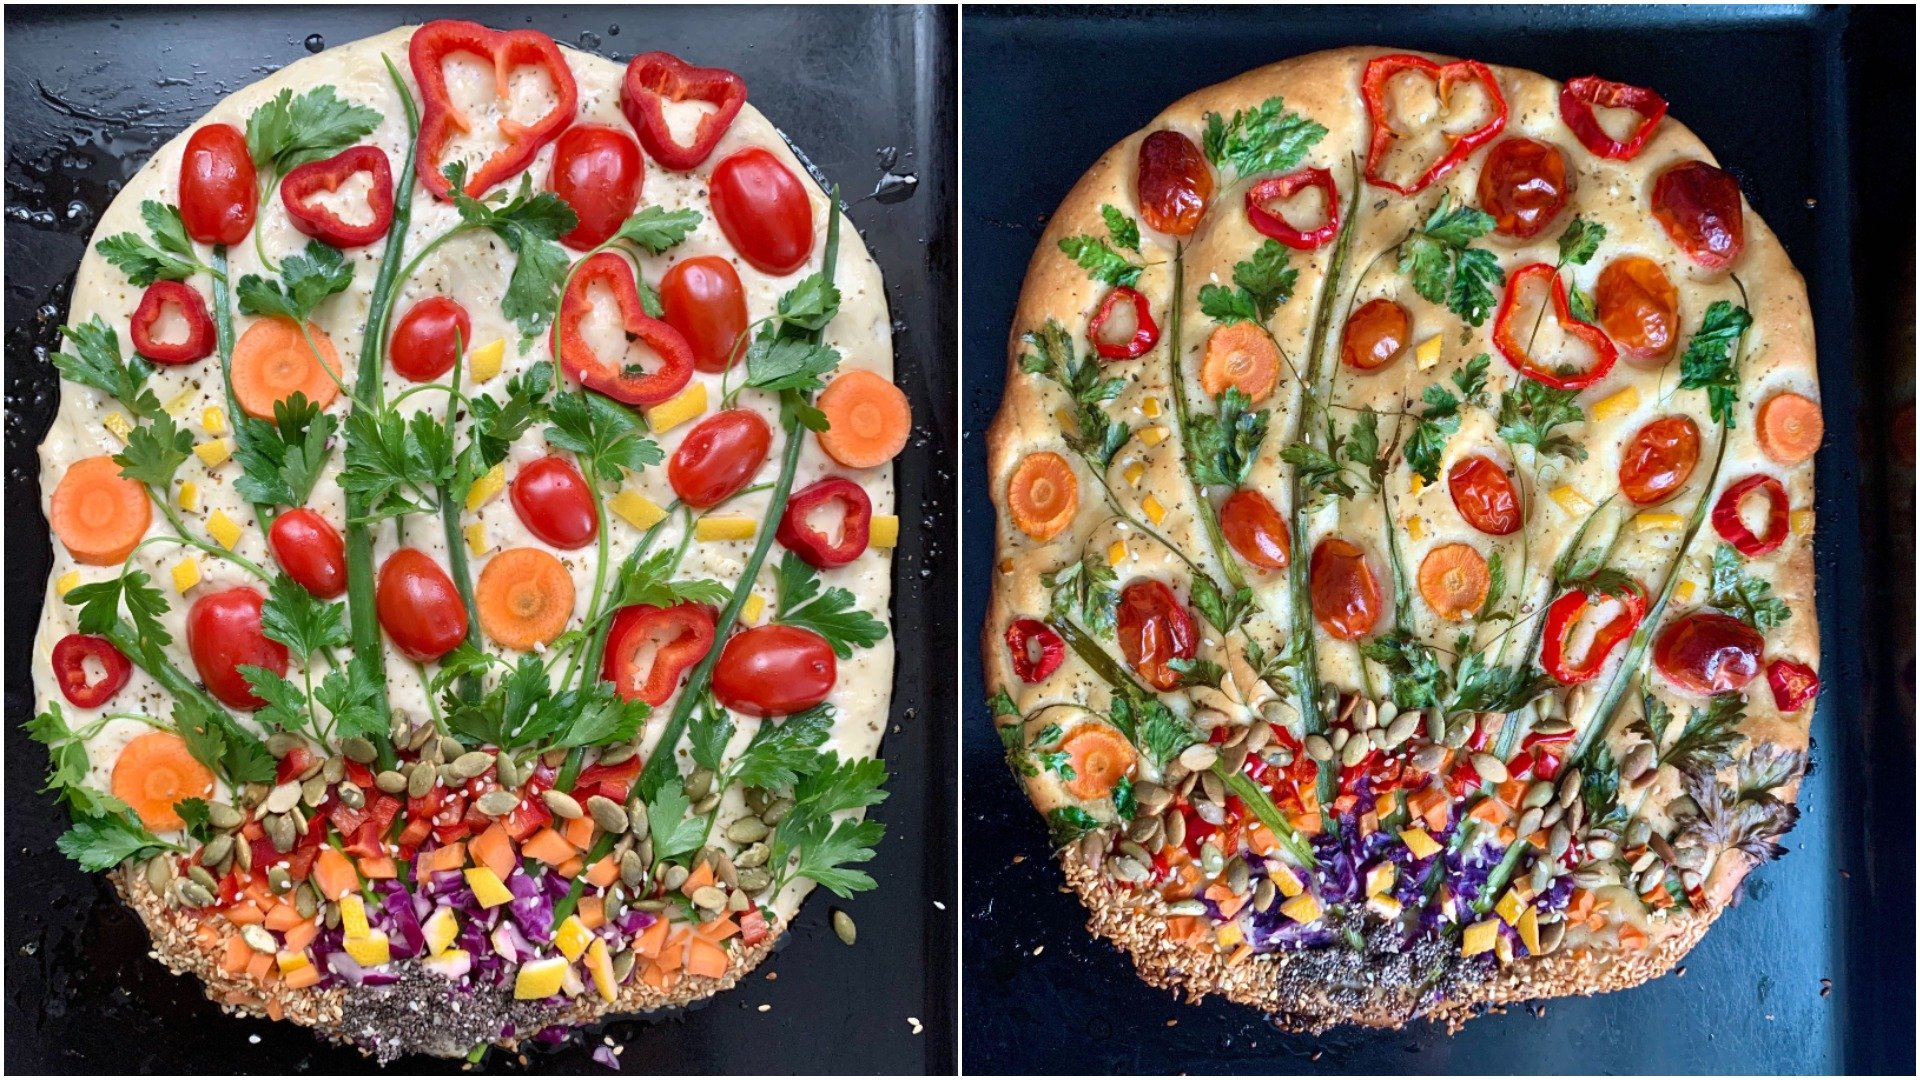 Before and after, focaccia garden No. 2. (Photo by Mindy Yartaşı)